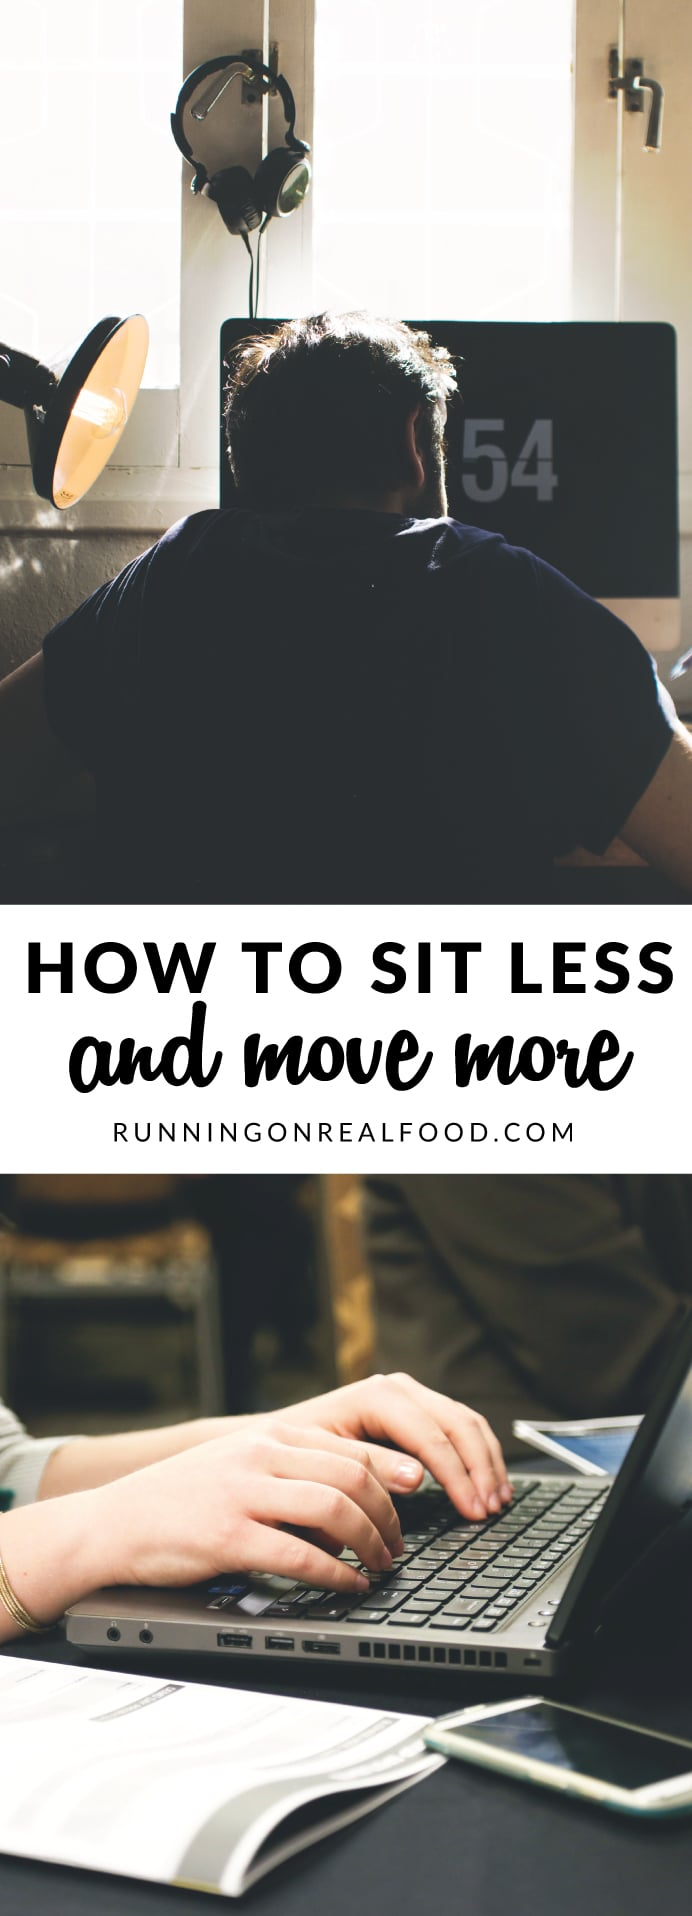 How to Sit Less and Move More